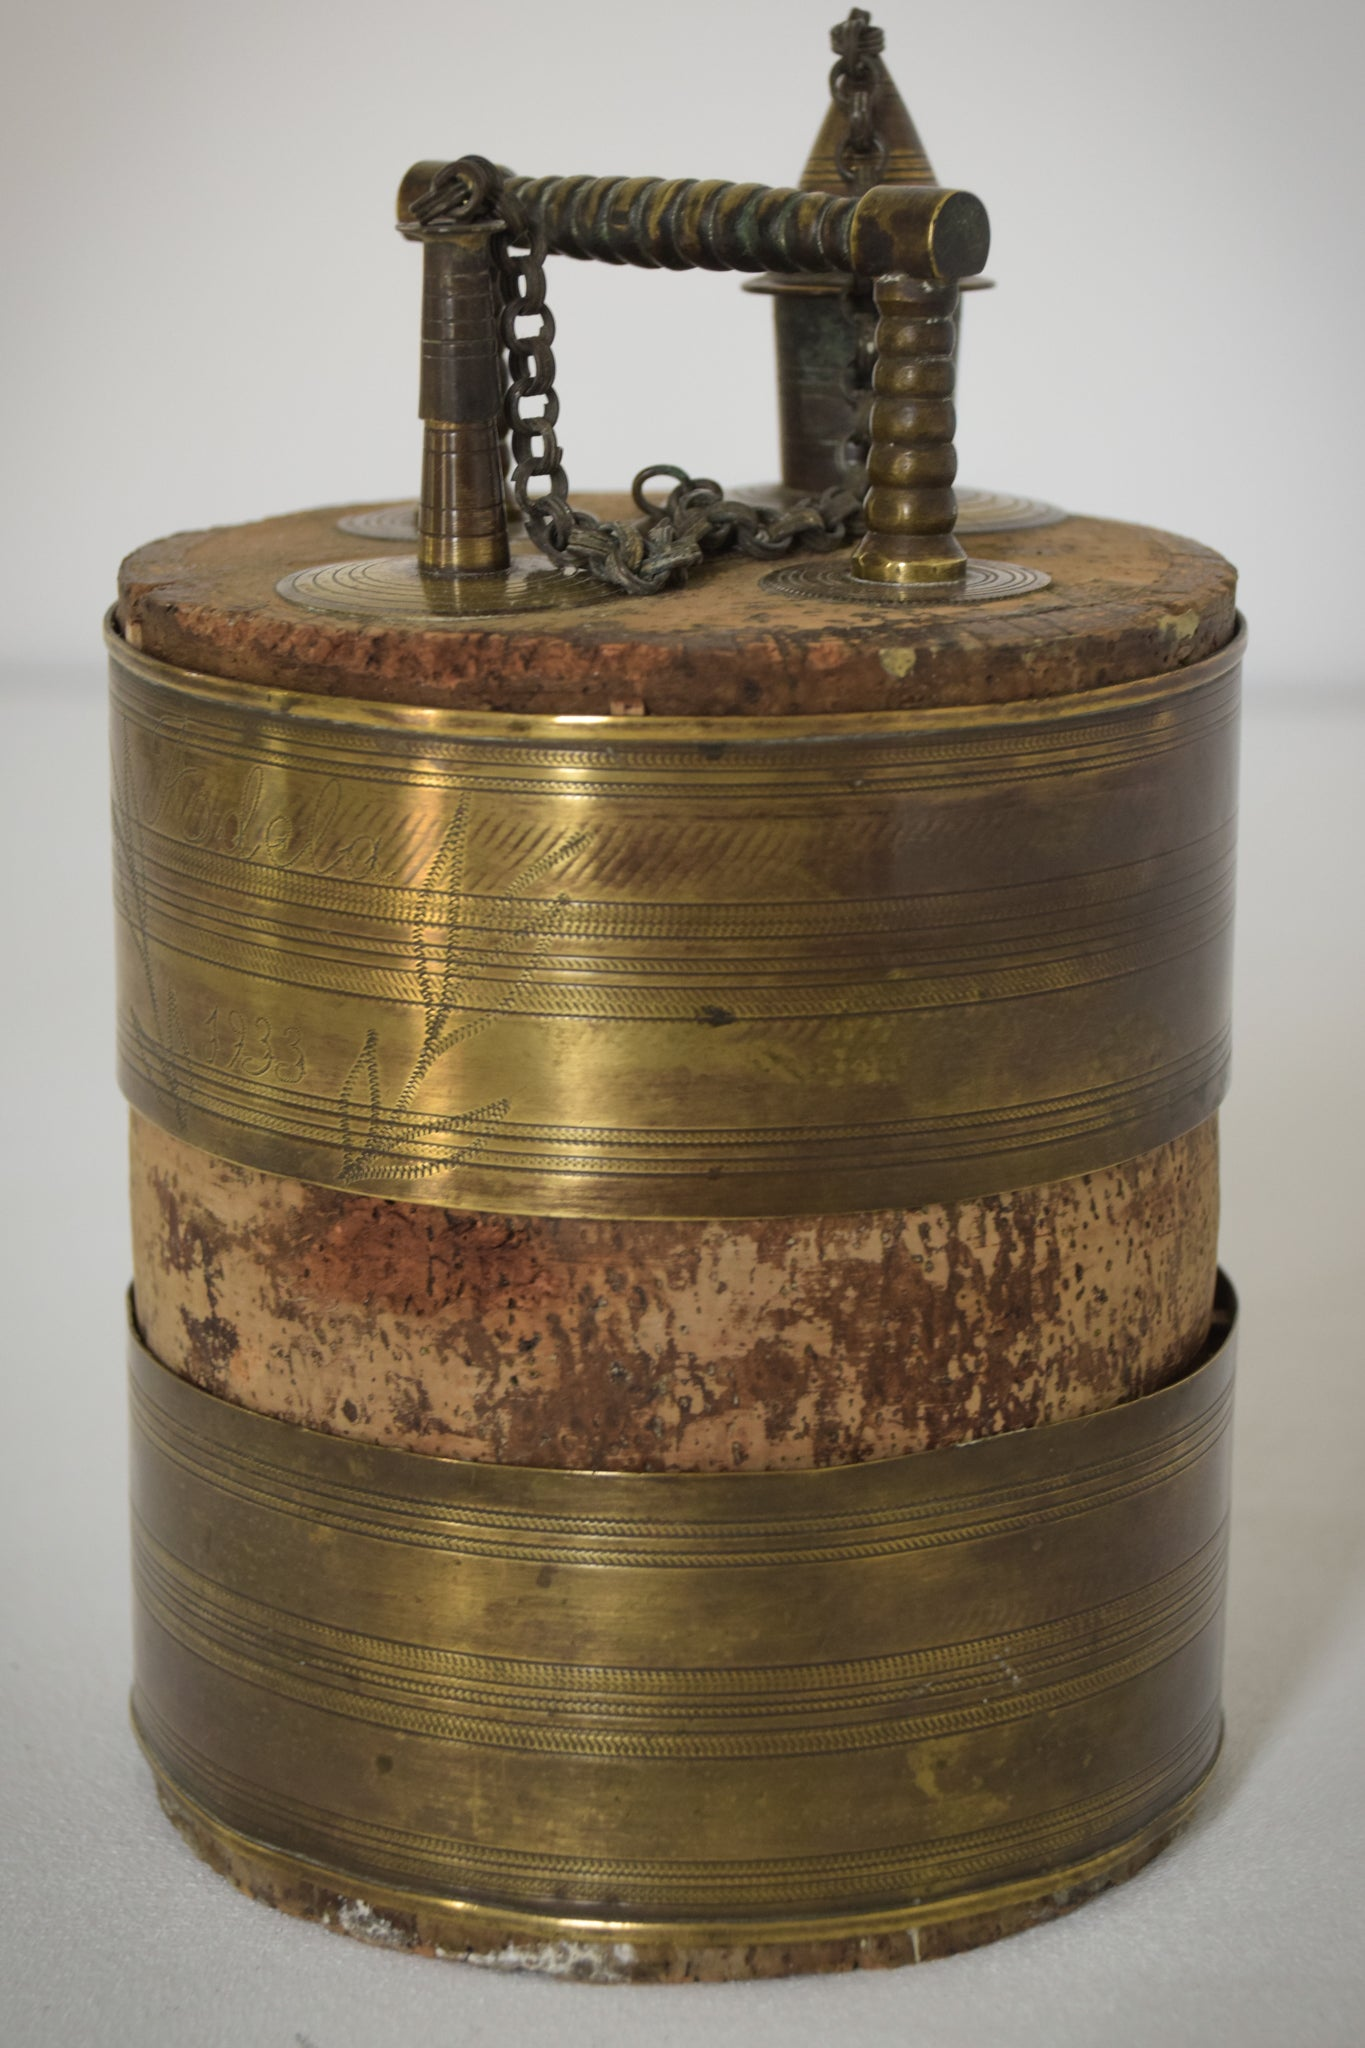 Antique Olive or Wine Barrel_4